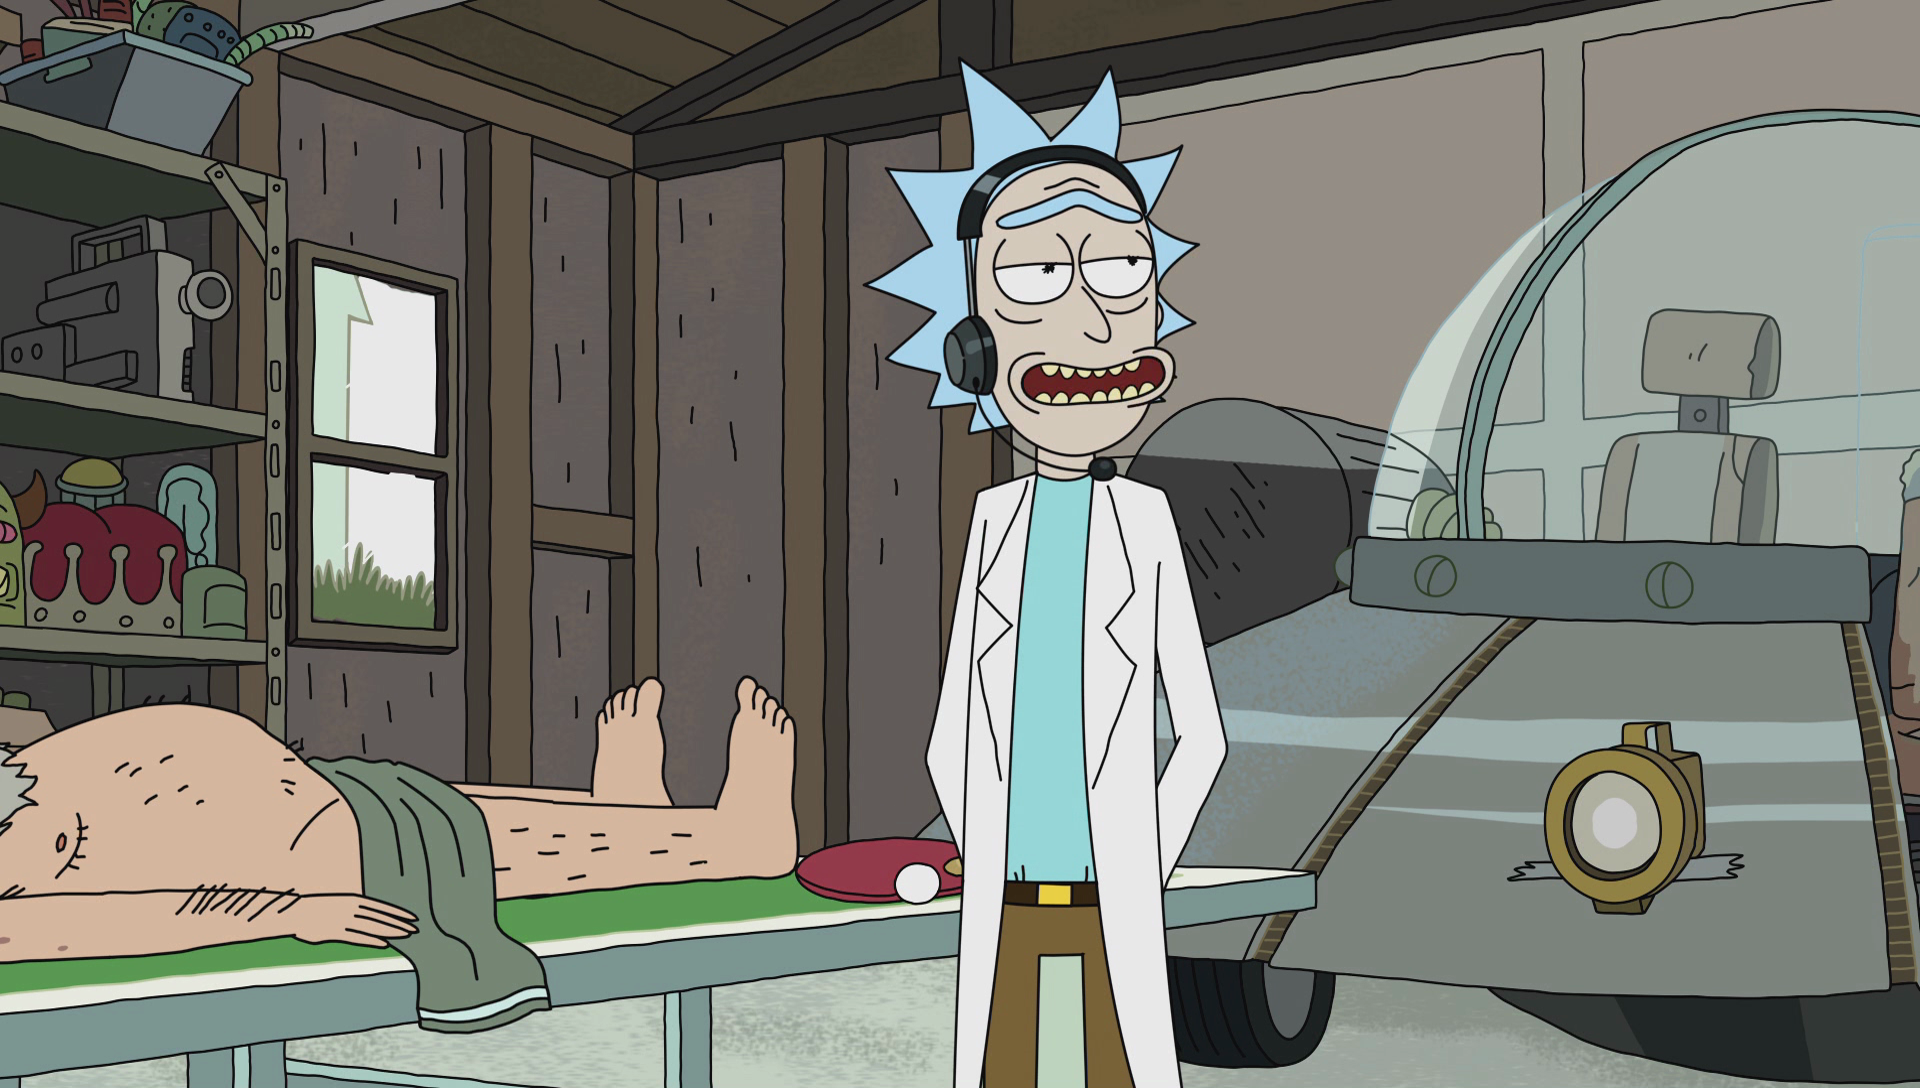 Image - S1e3 welcome to anatomy park.png | Rick and Morty Wiki ...